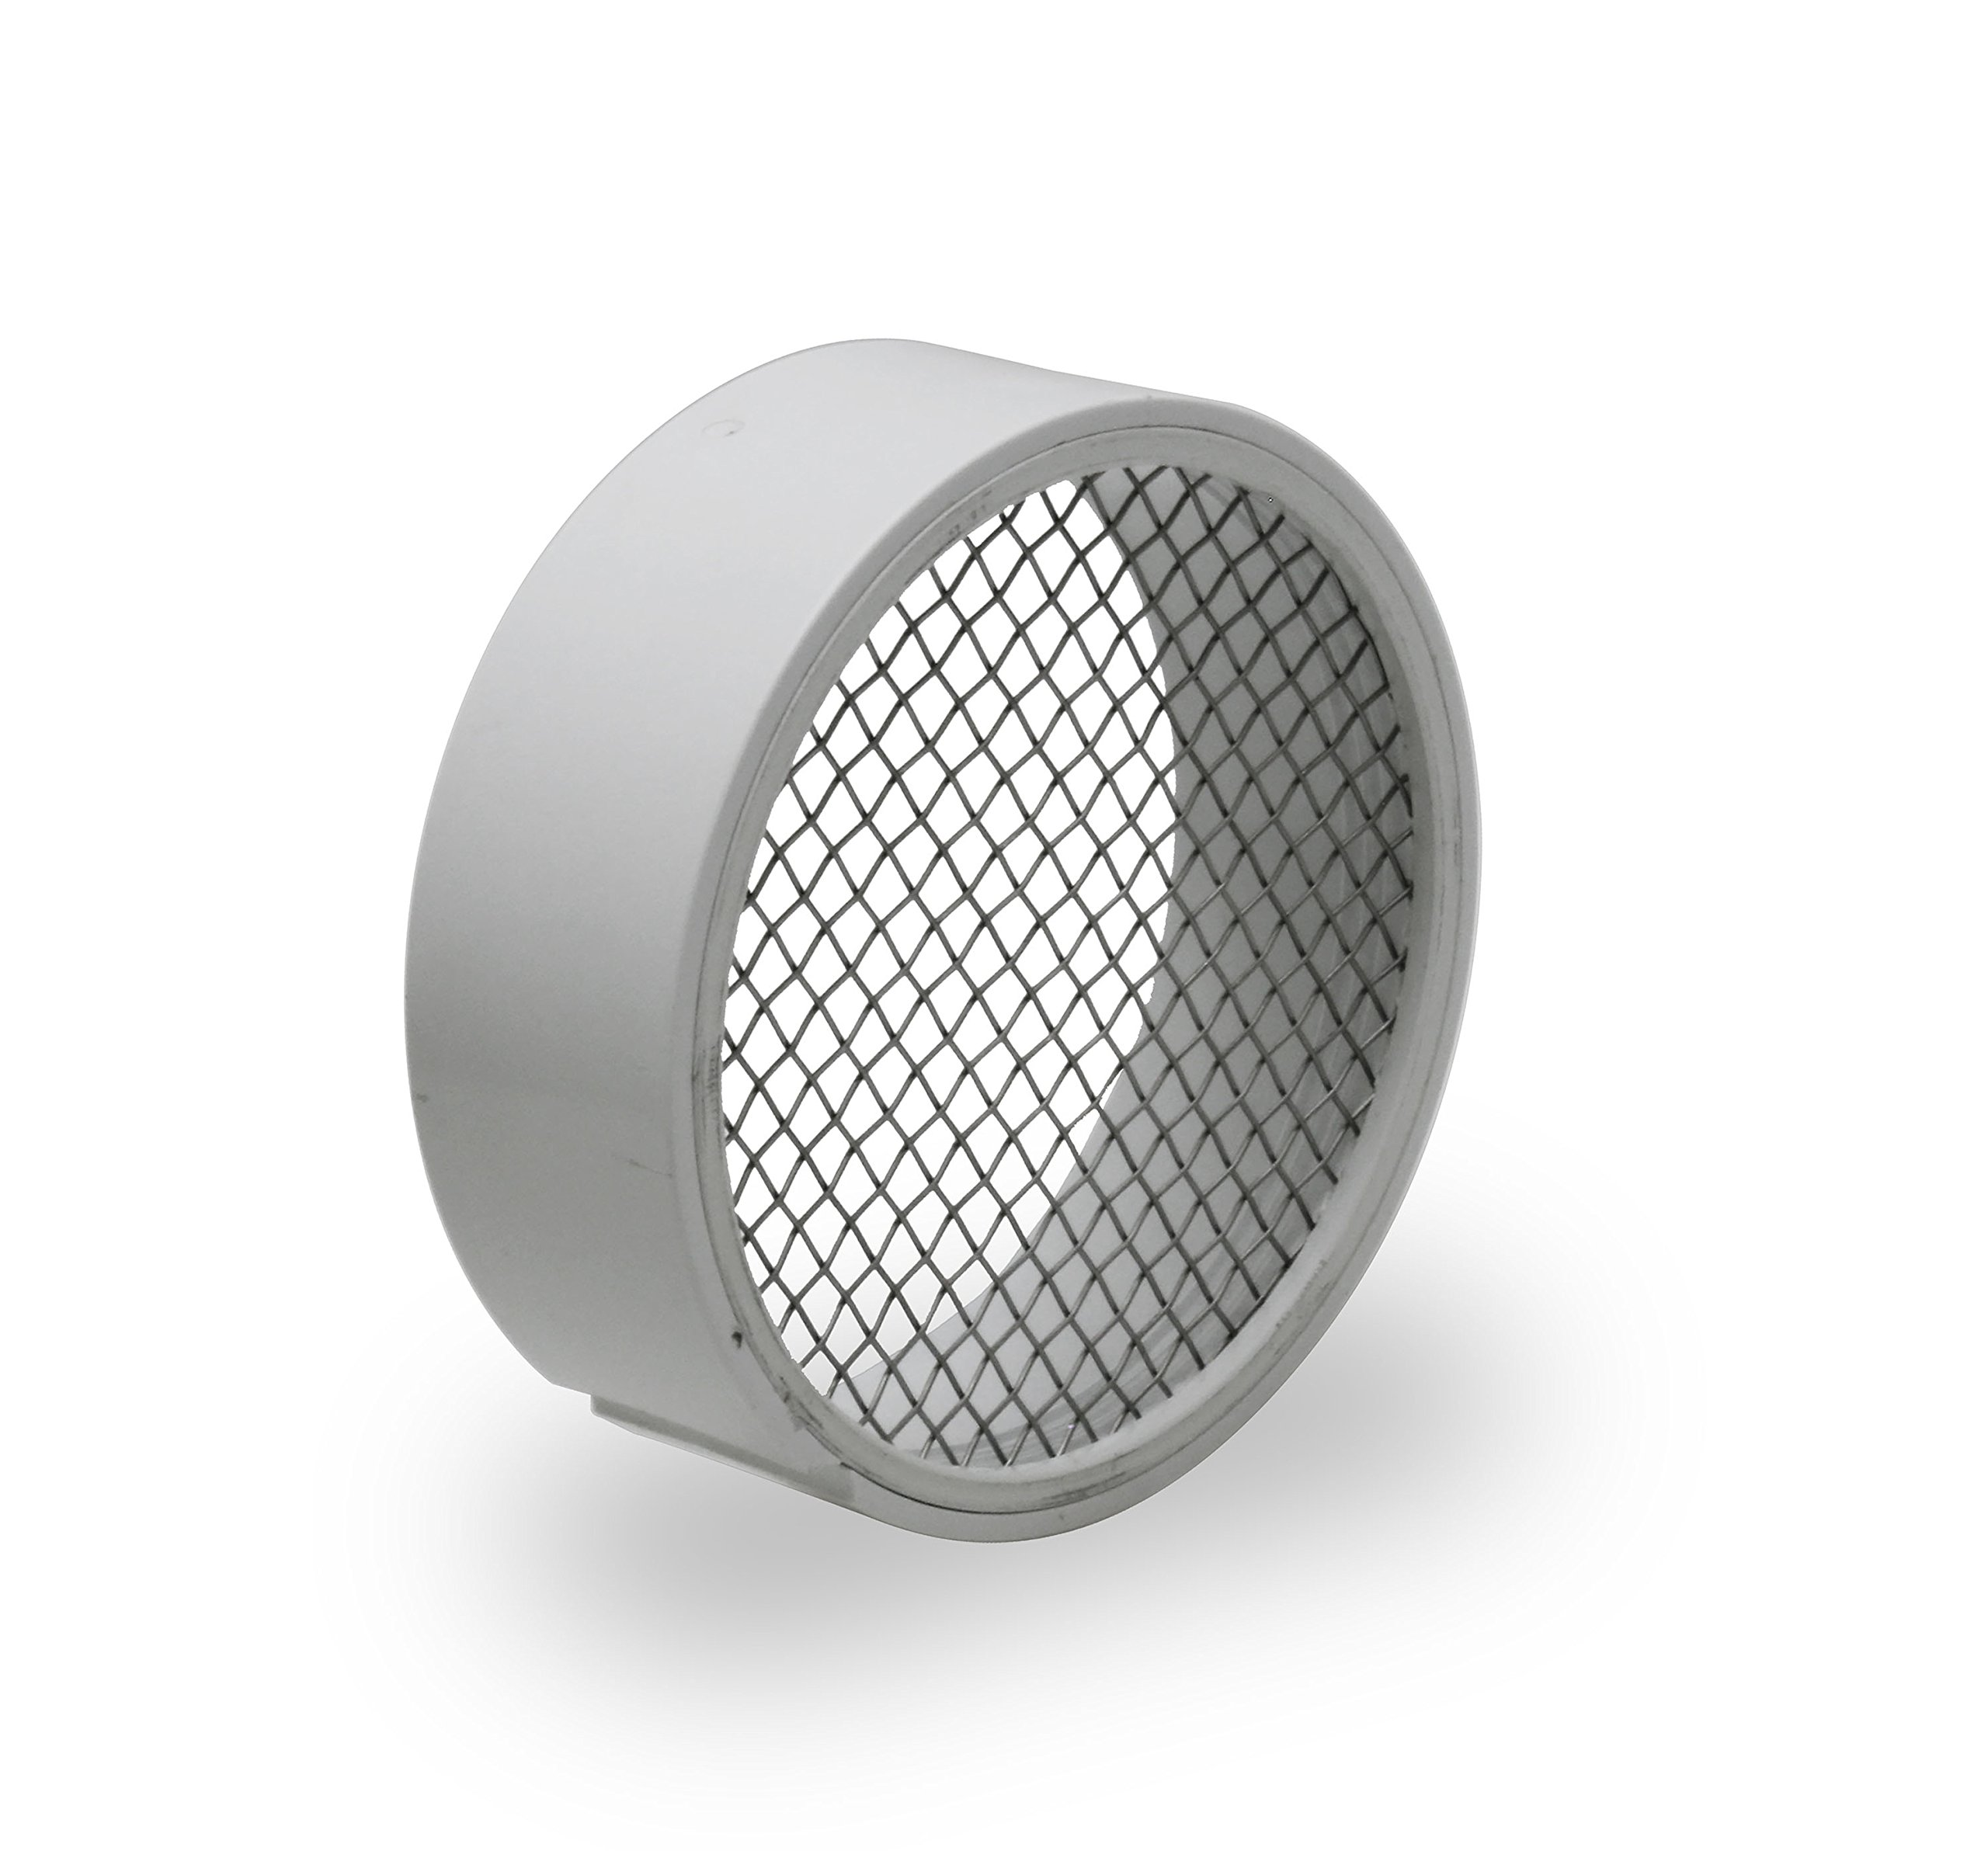 Raven R1511 PVC Termination Vent with 304 Stainless Steel Screen, 6 Inch, Slotted Side for Condensation to Drain, Durable, Easy to Install in Hub of PVC Fitting, Maximum Airflow